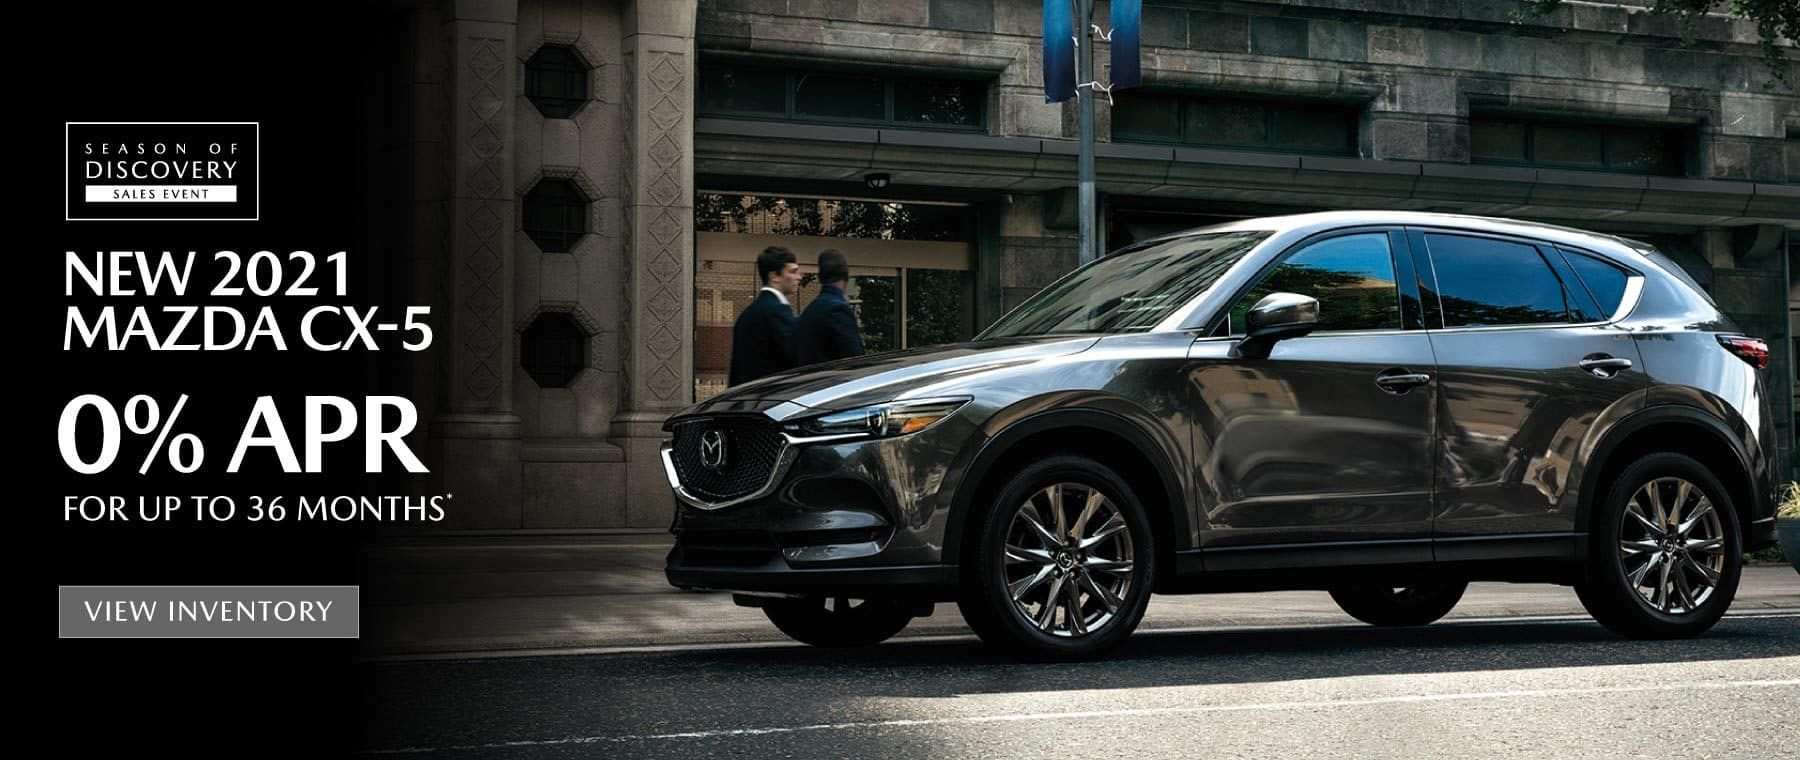 2021 Mazda CX-5   0% APR for up to 36 months   View Inventory